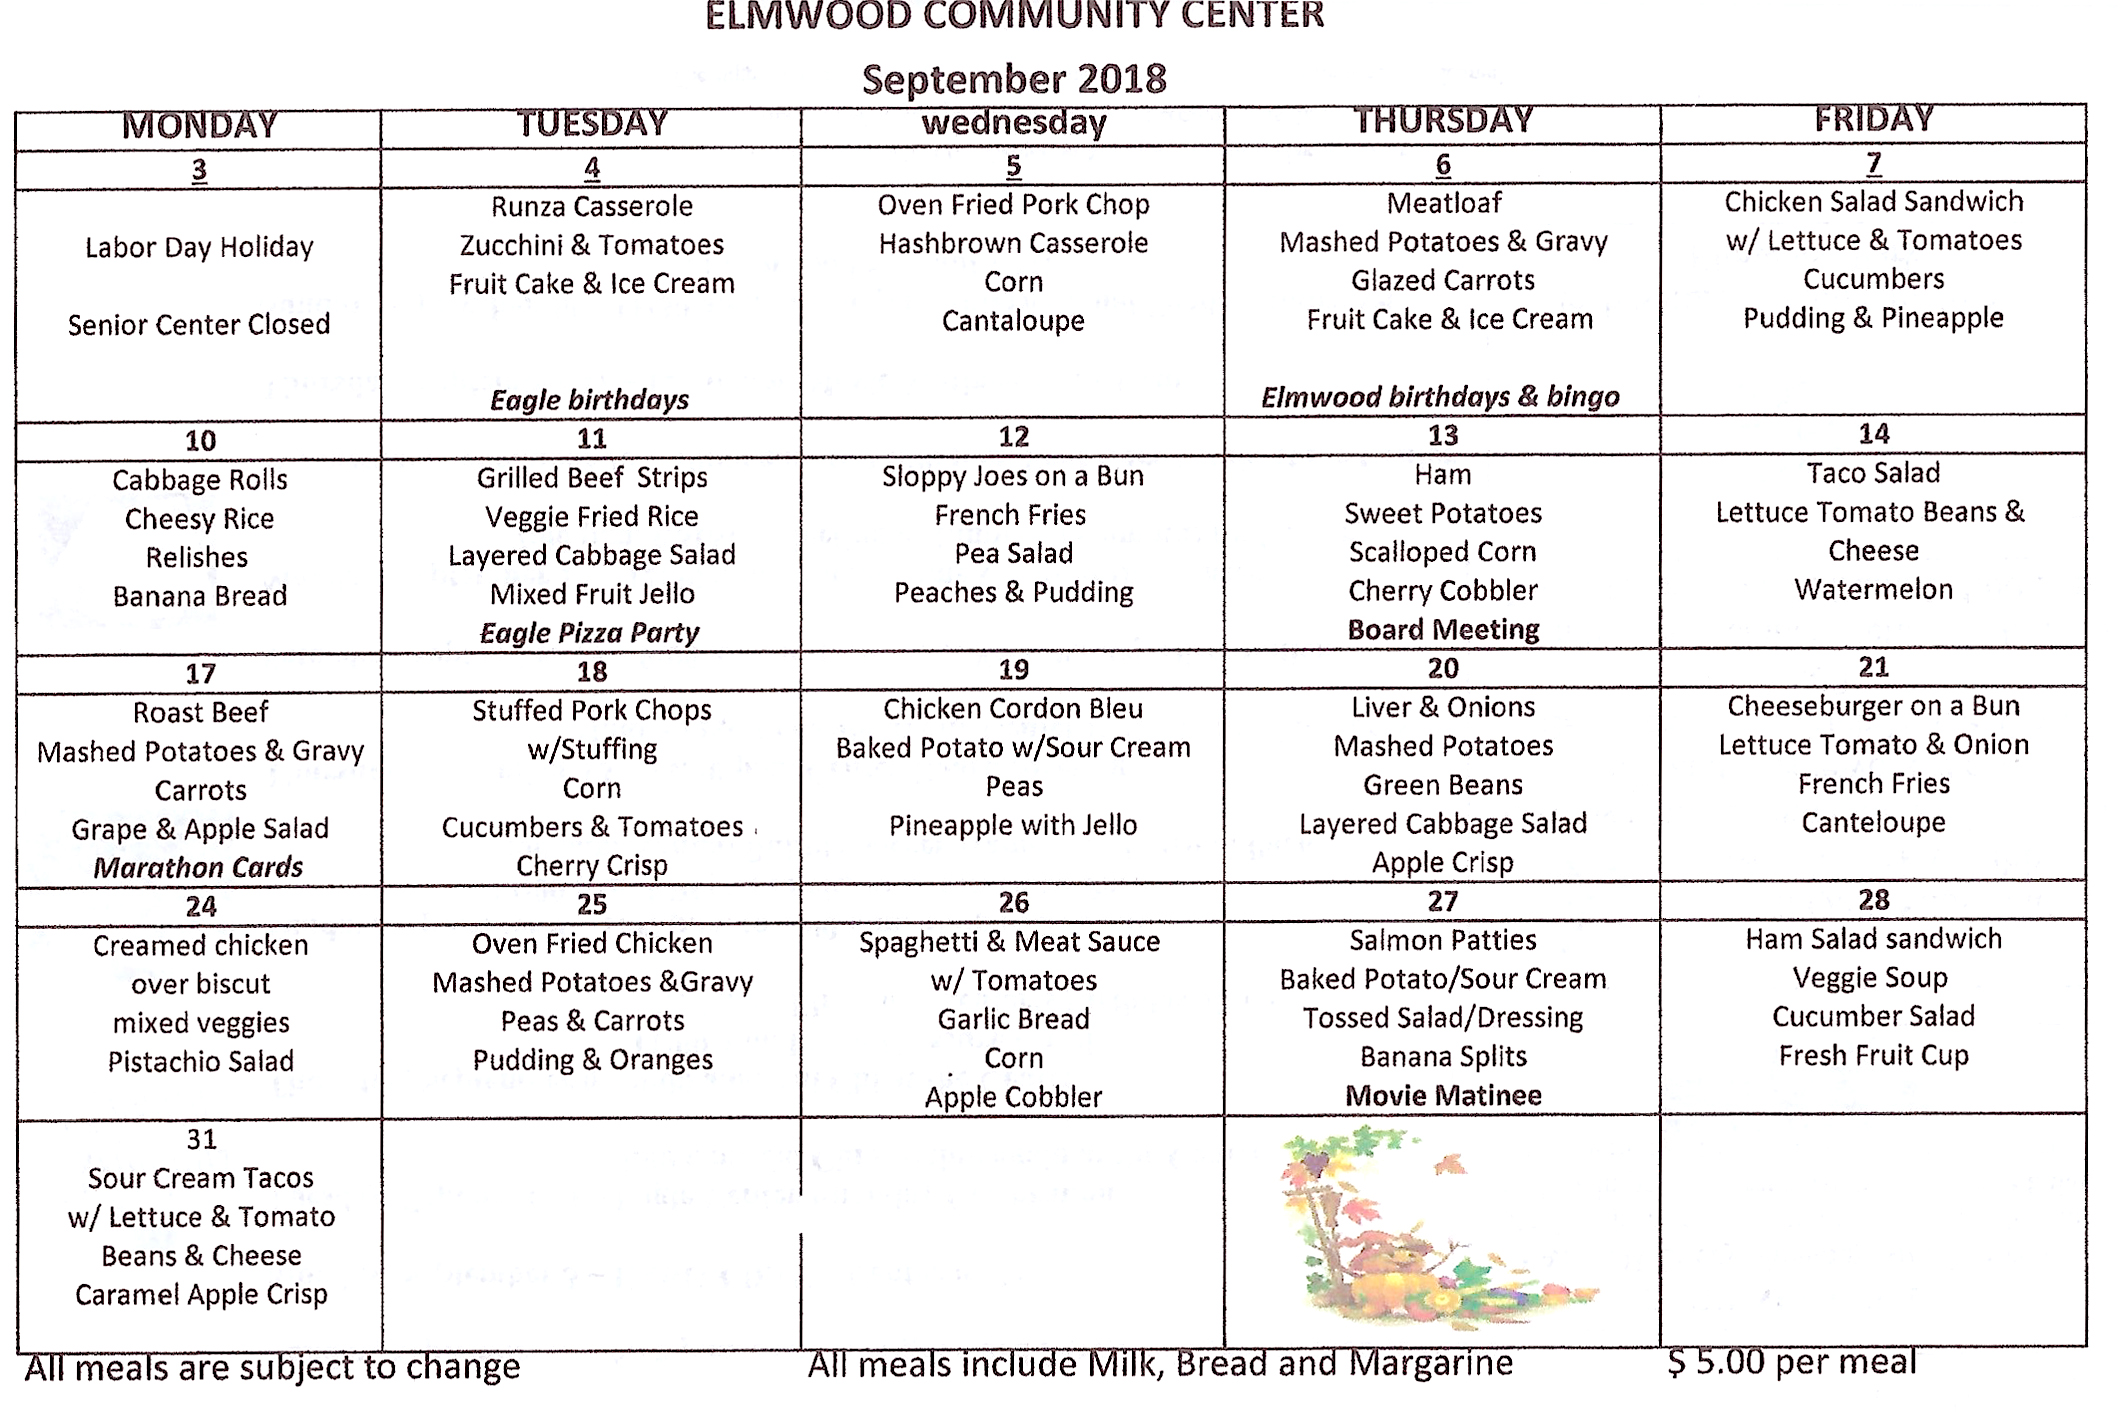 CommunityCenter menu 92018